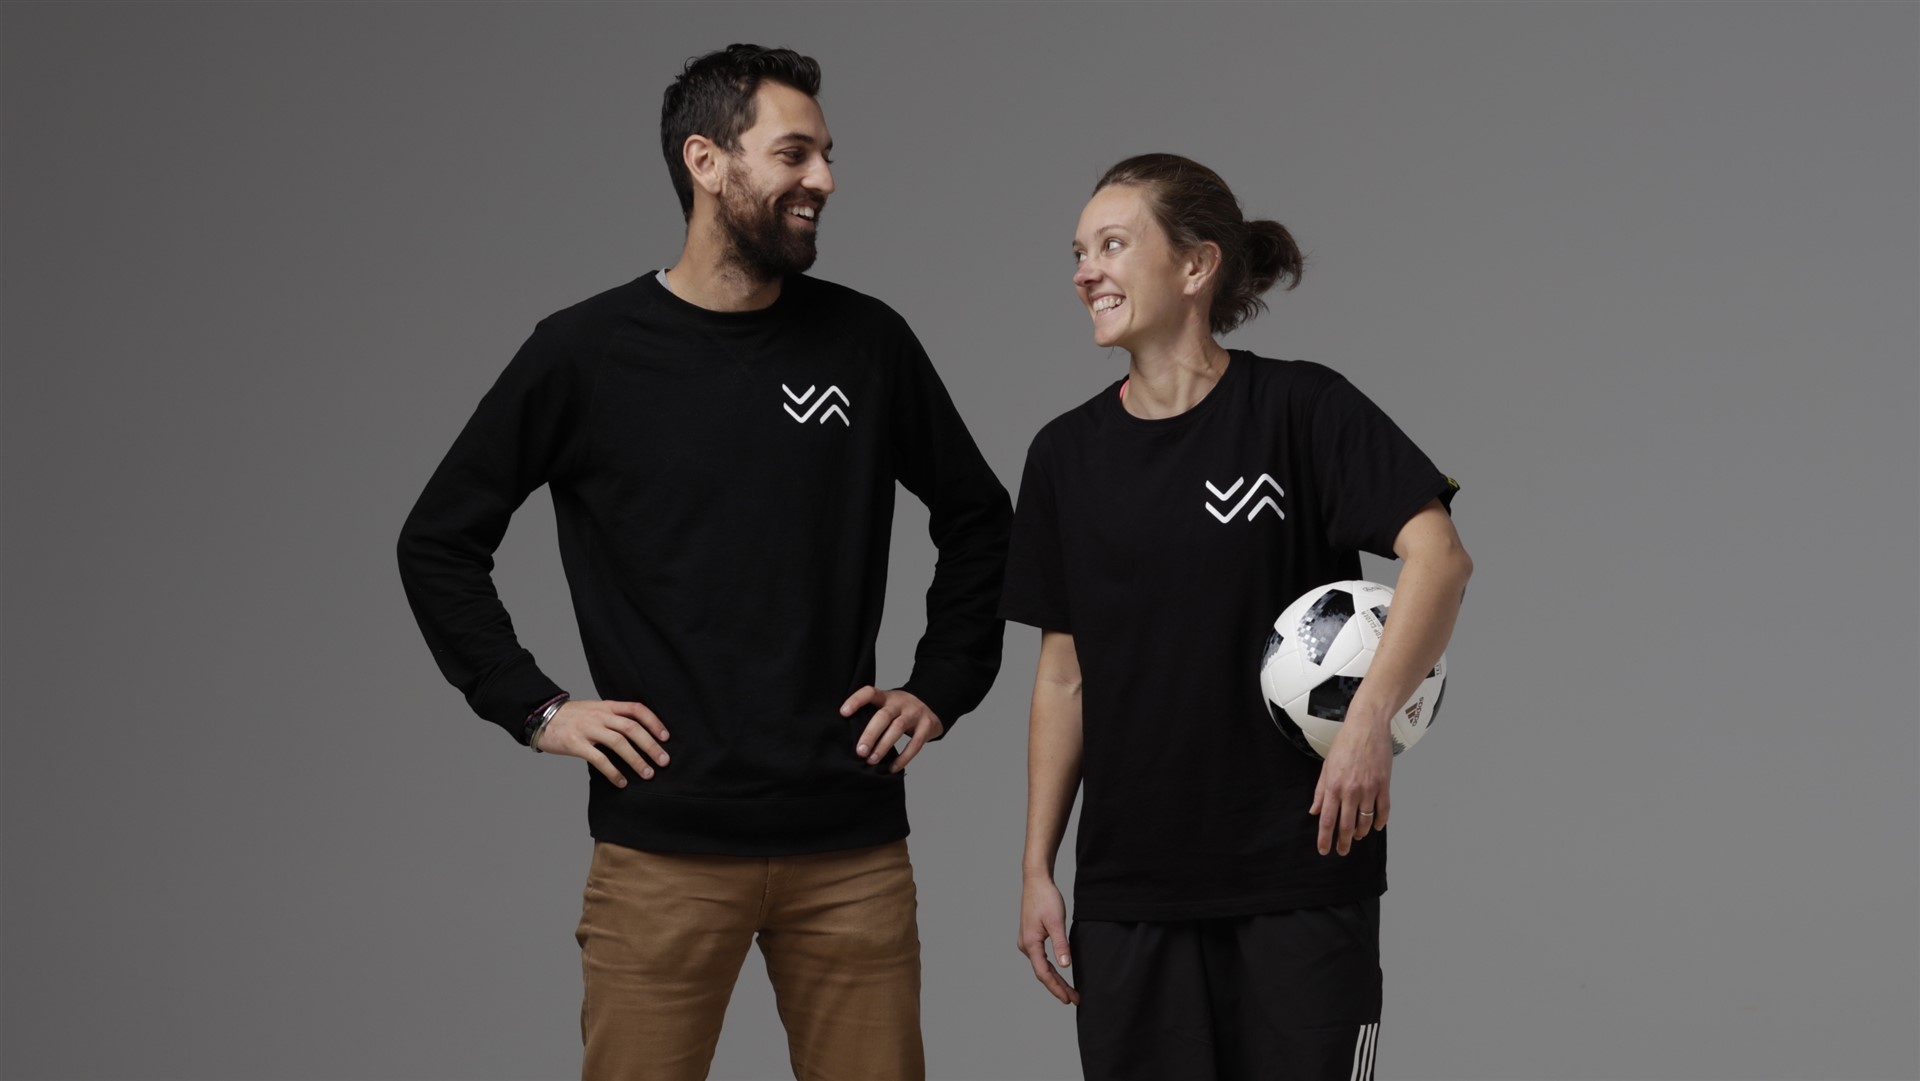 IDA Sports Co-founders Ben and Laura